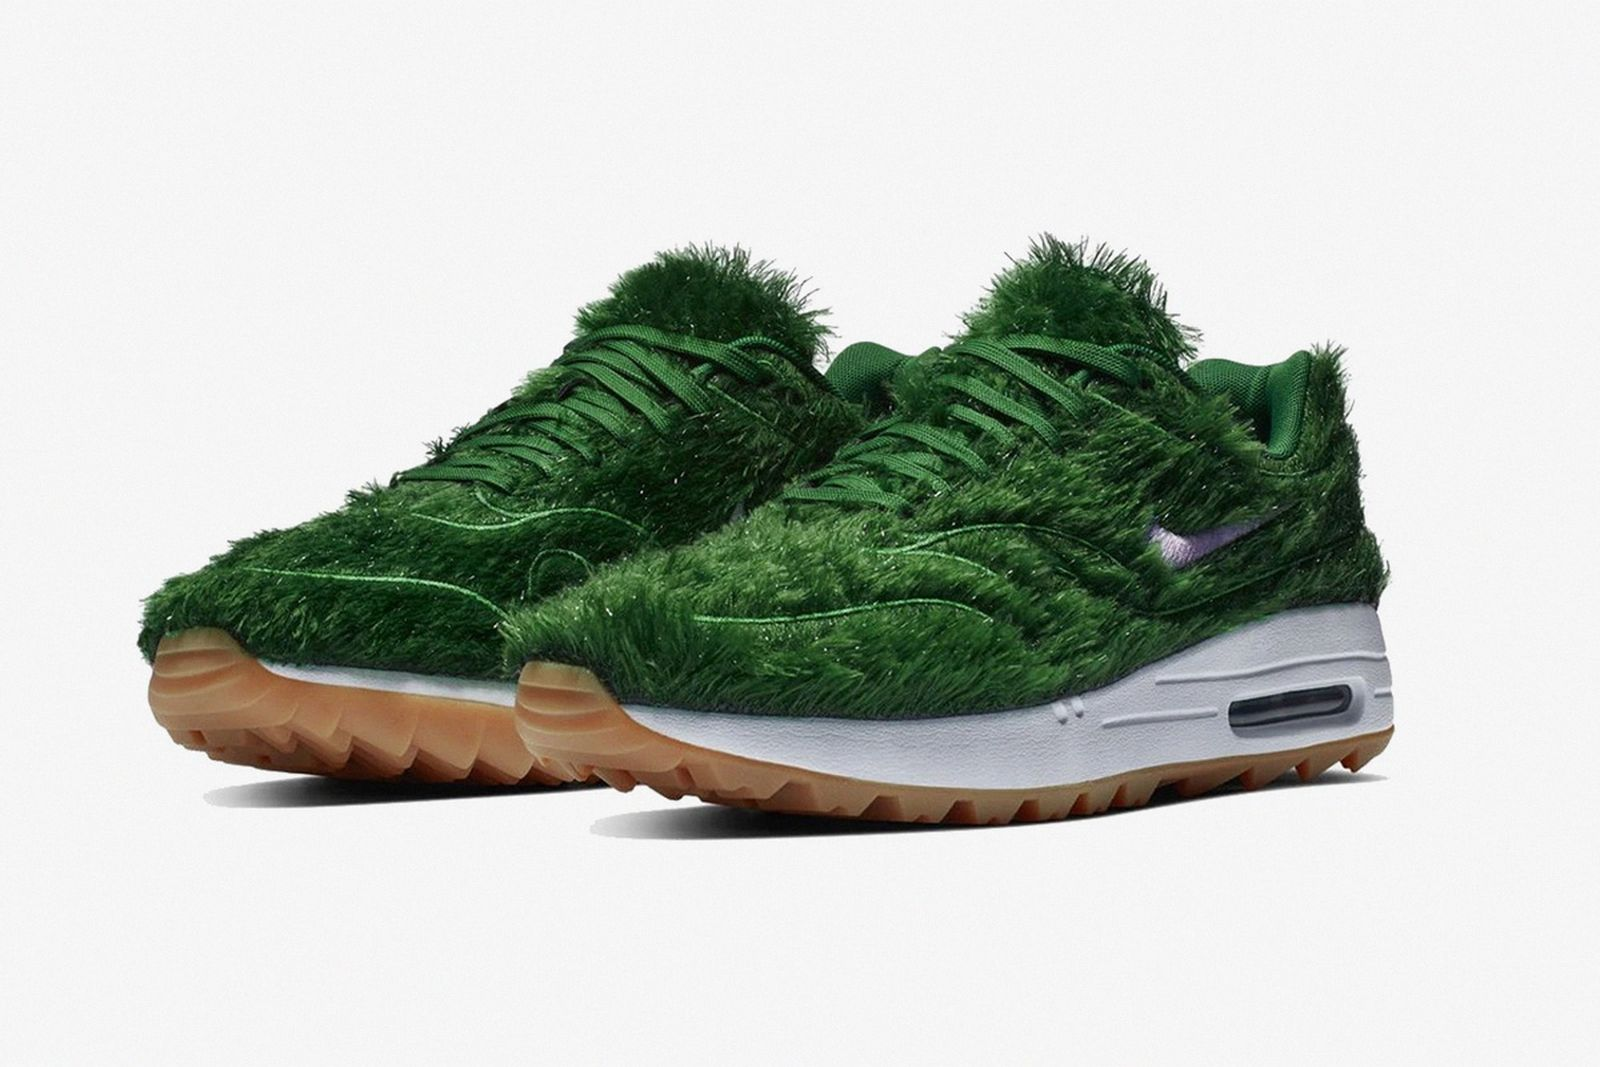 best nike sneakers 2019 Girls Don't Cry Martine Rose comme des garcons